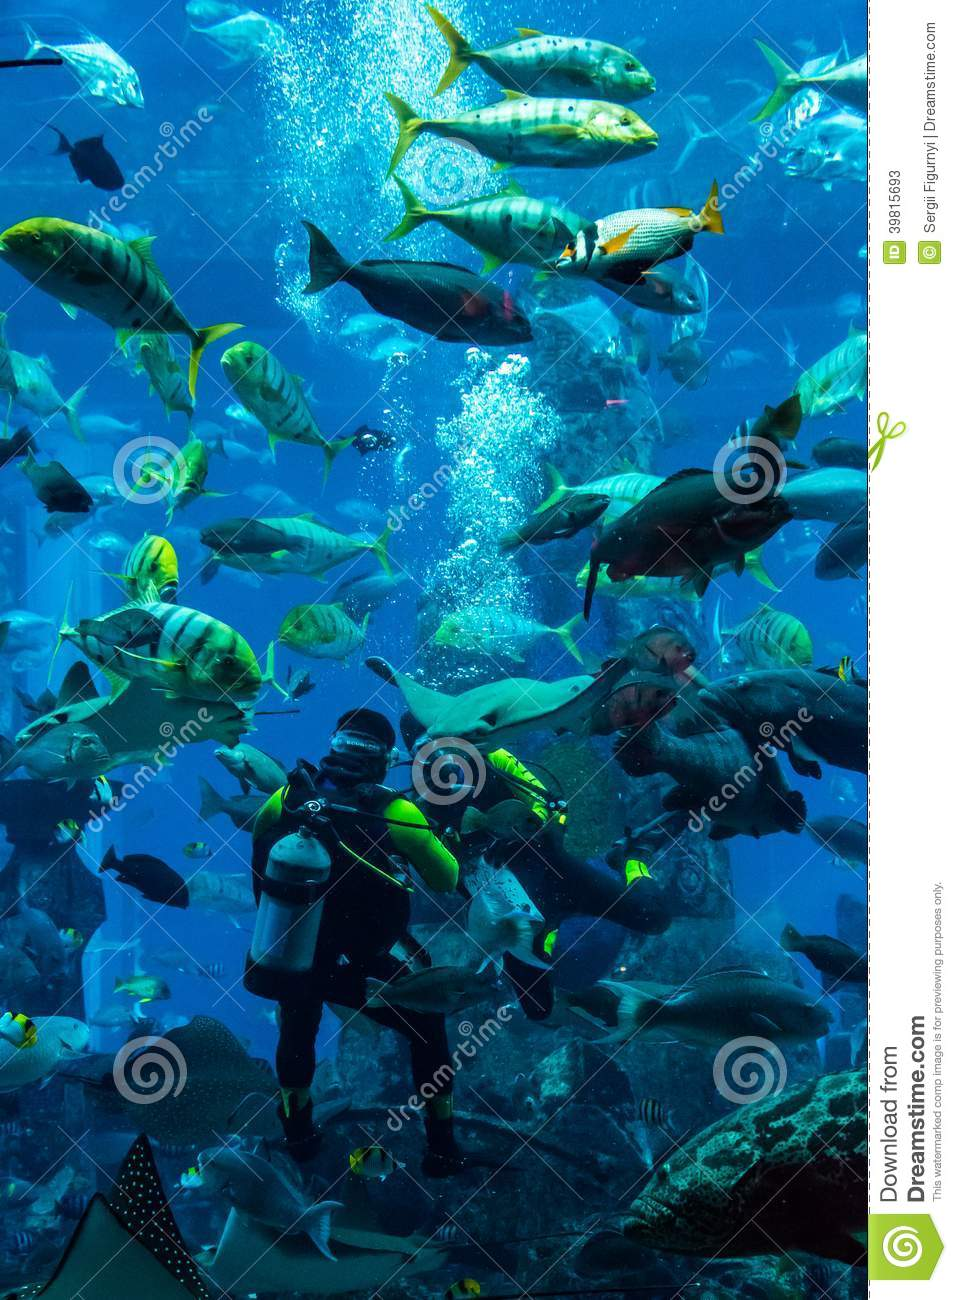 Fish aquarium in uae - Huge Aquarium In Dubai Diver Feeding Fishes Editorial Stock Photo